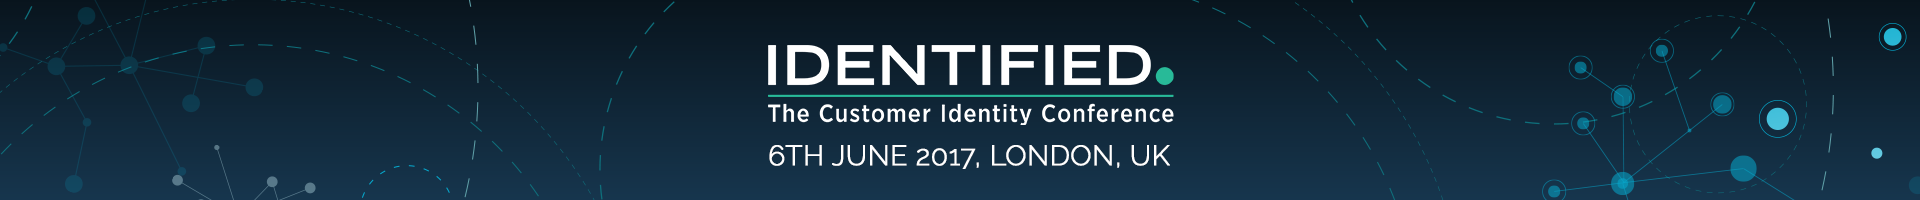 IDENTIFIED. The Customer Identity Conference